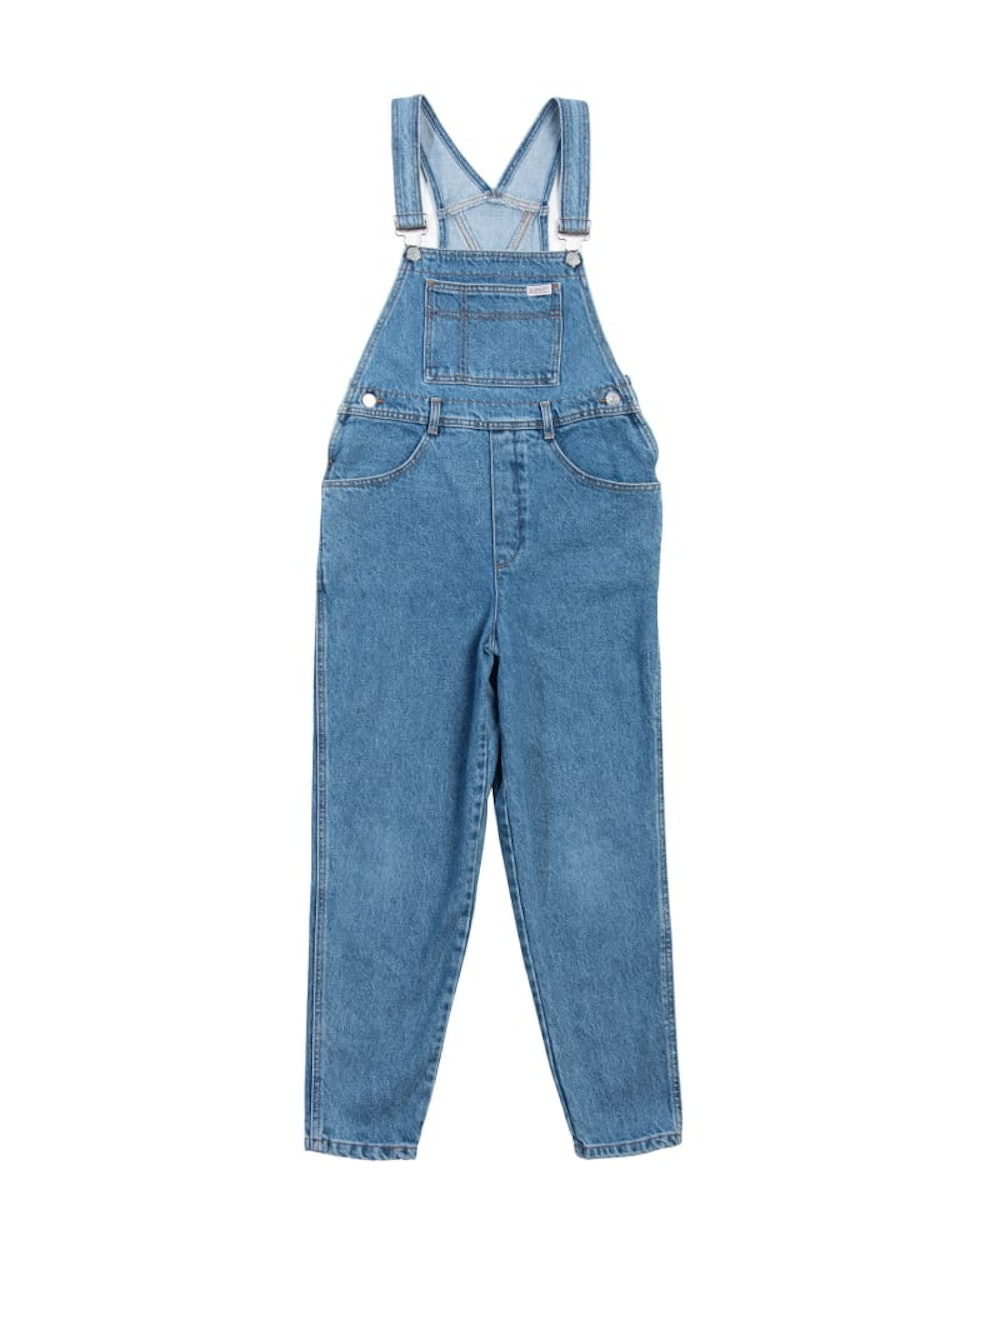 '80s GUESS Vintage Overalls